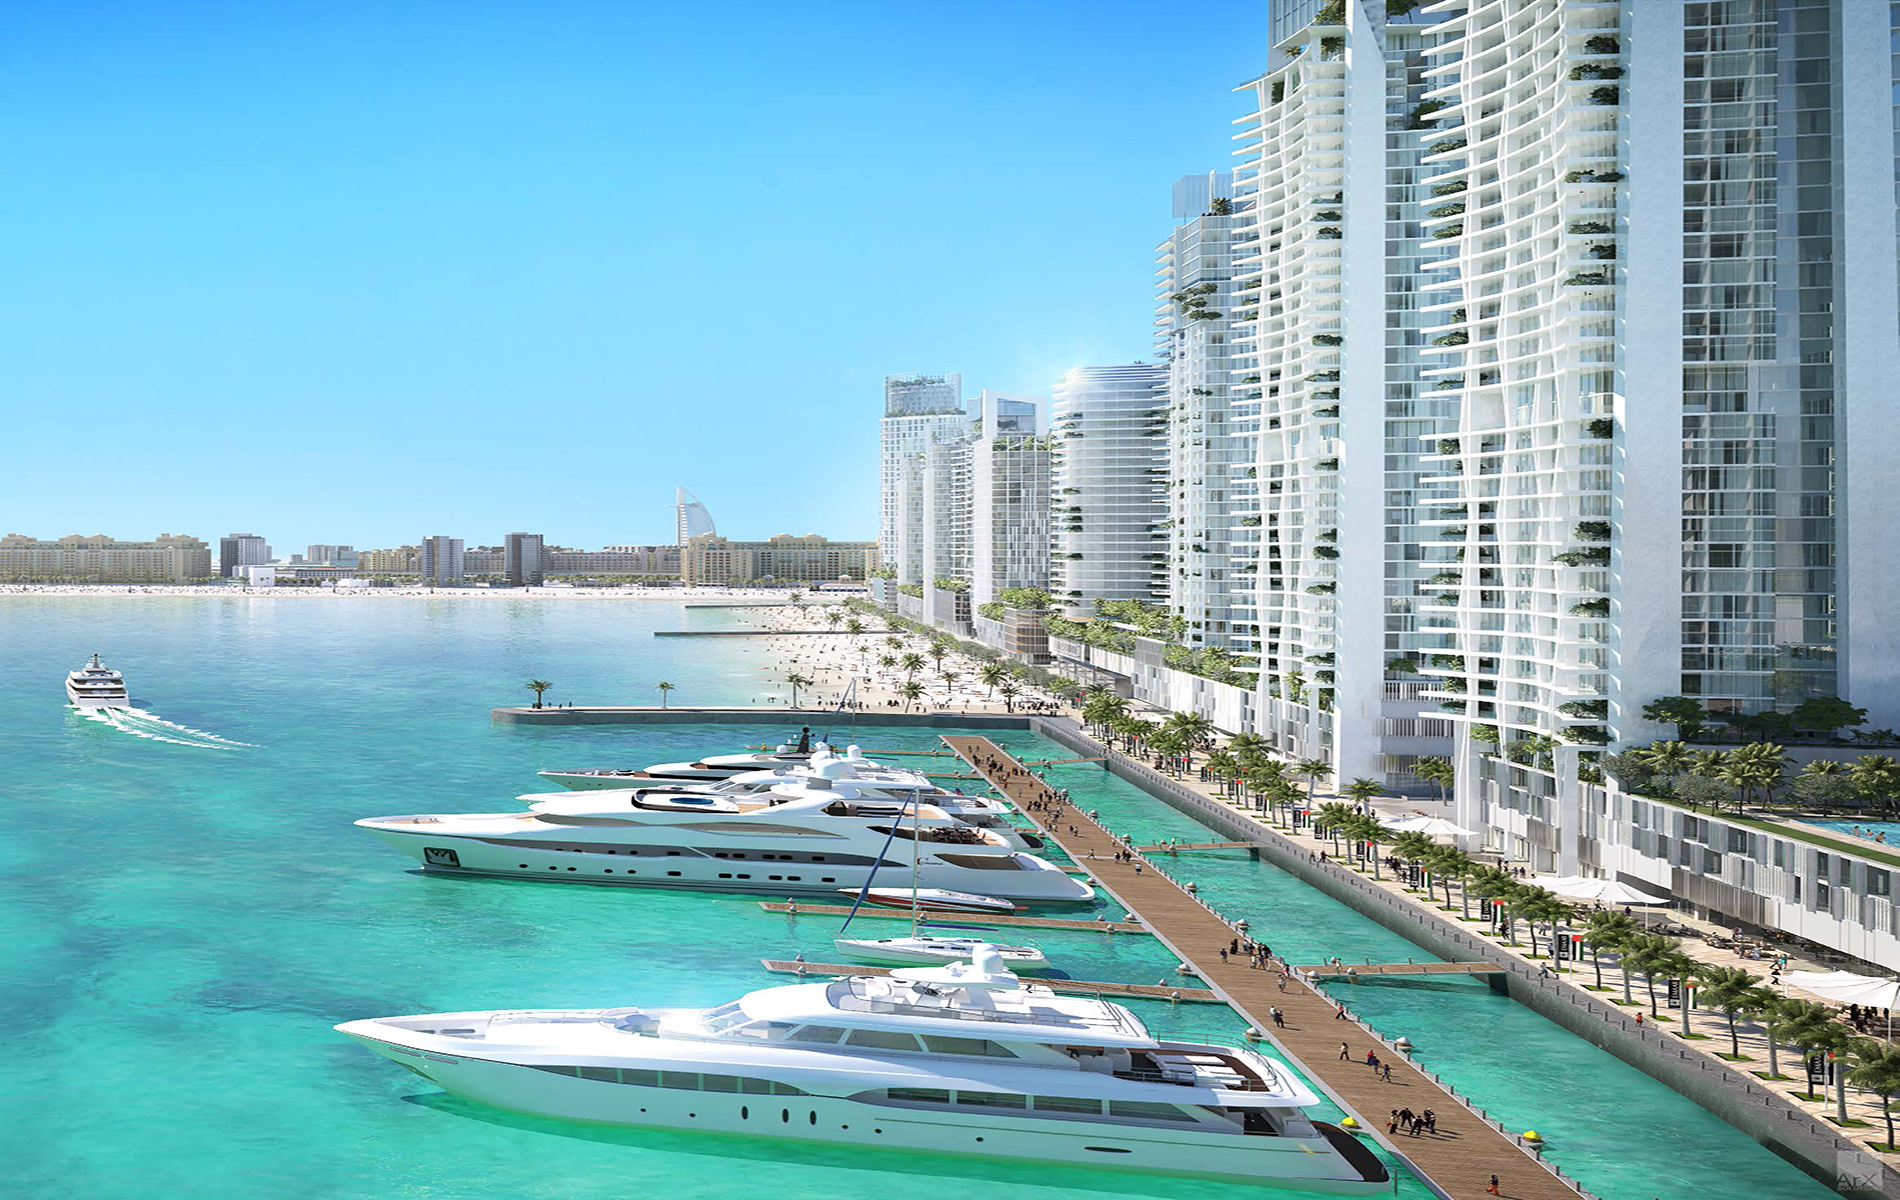 676253beach-vista-emaar-beachfront-hero.jpg